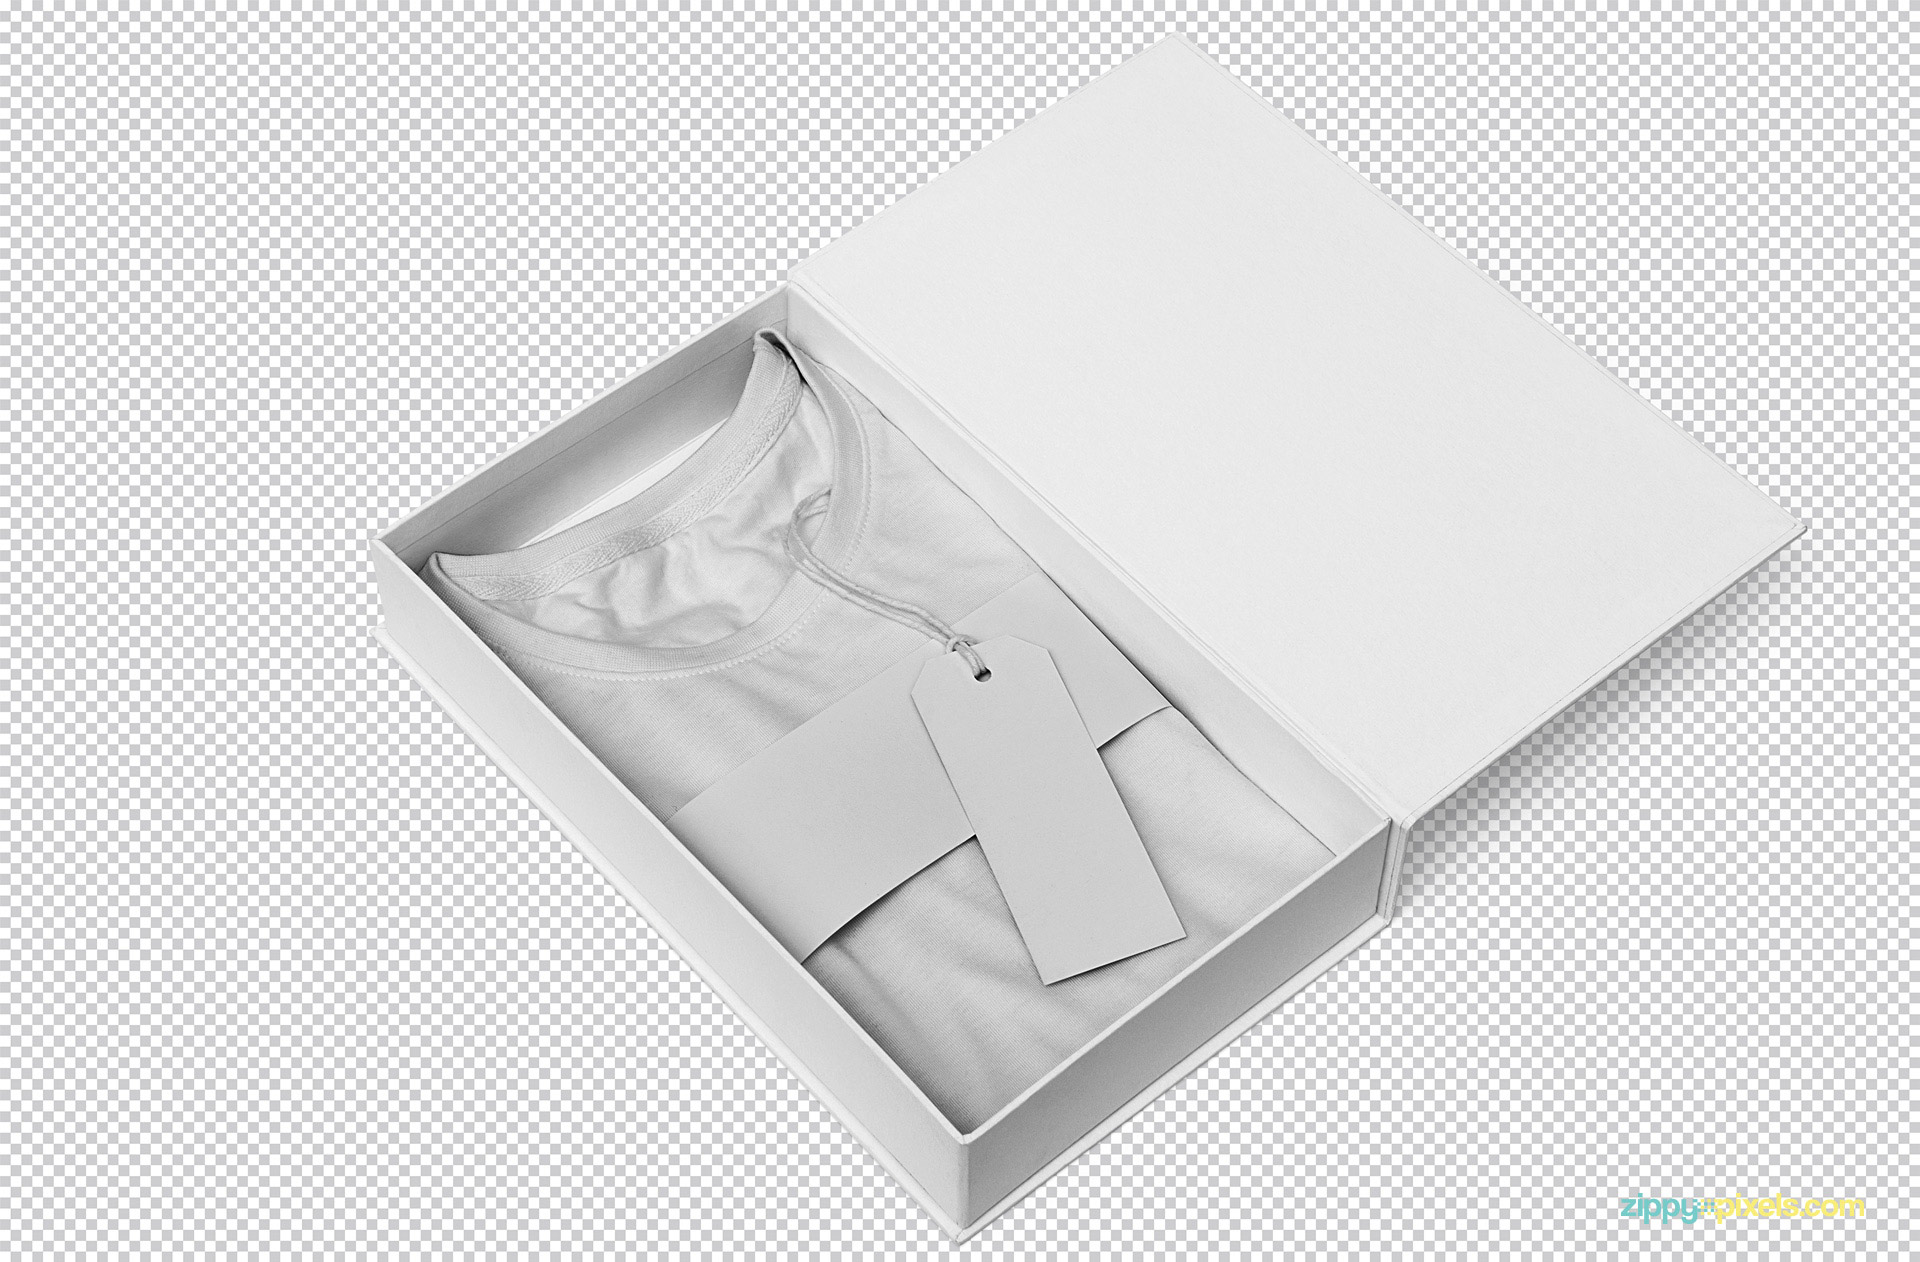 Apparel box mockup with t-shirt, label tag and sleeve.